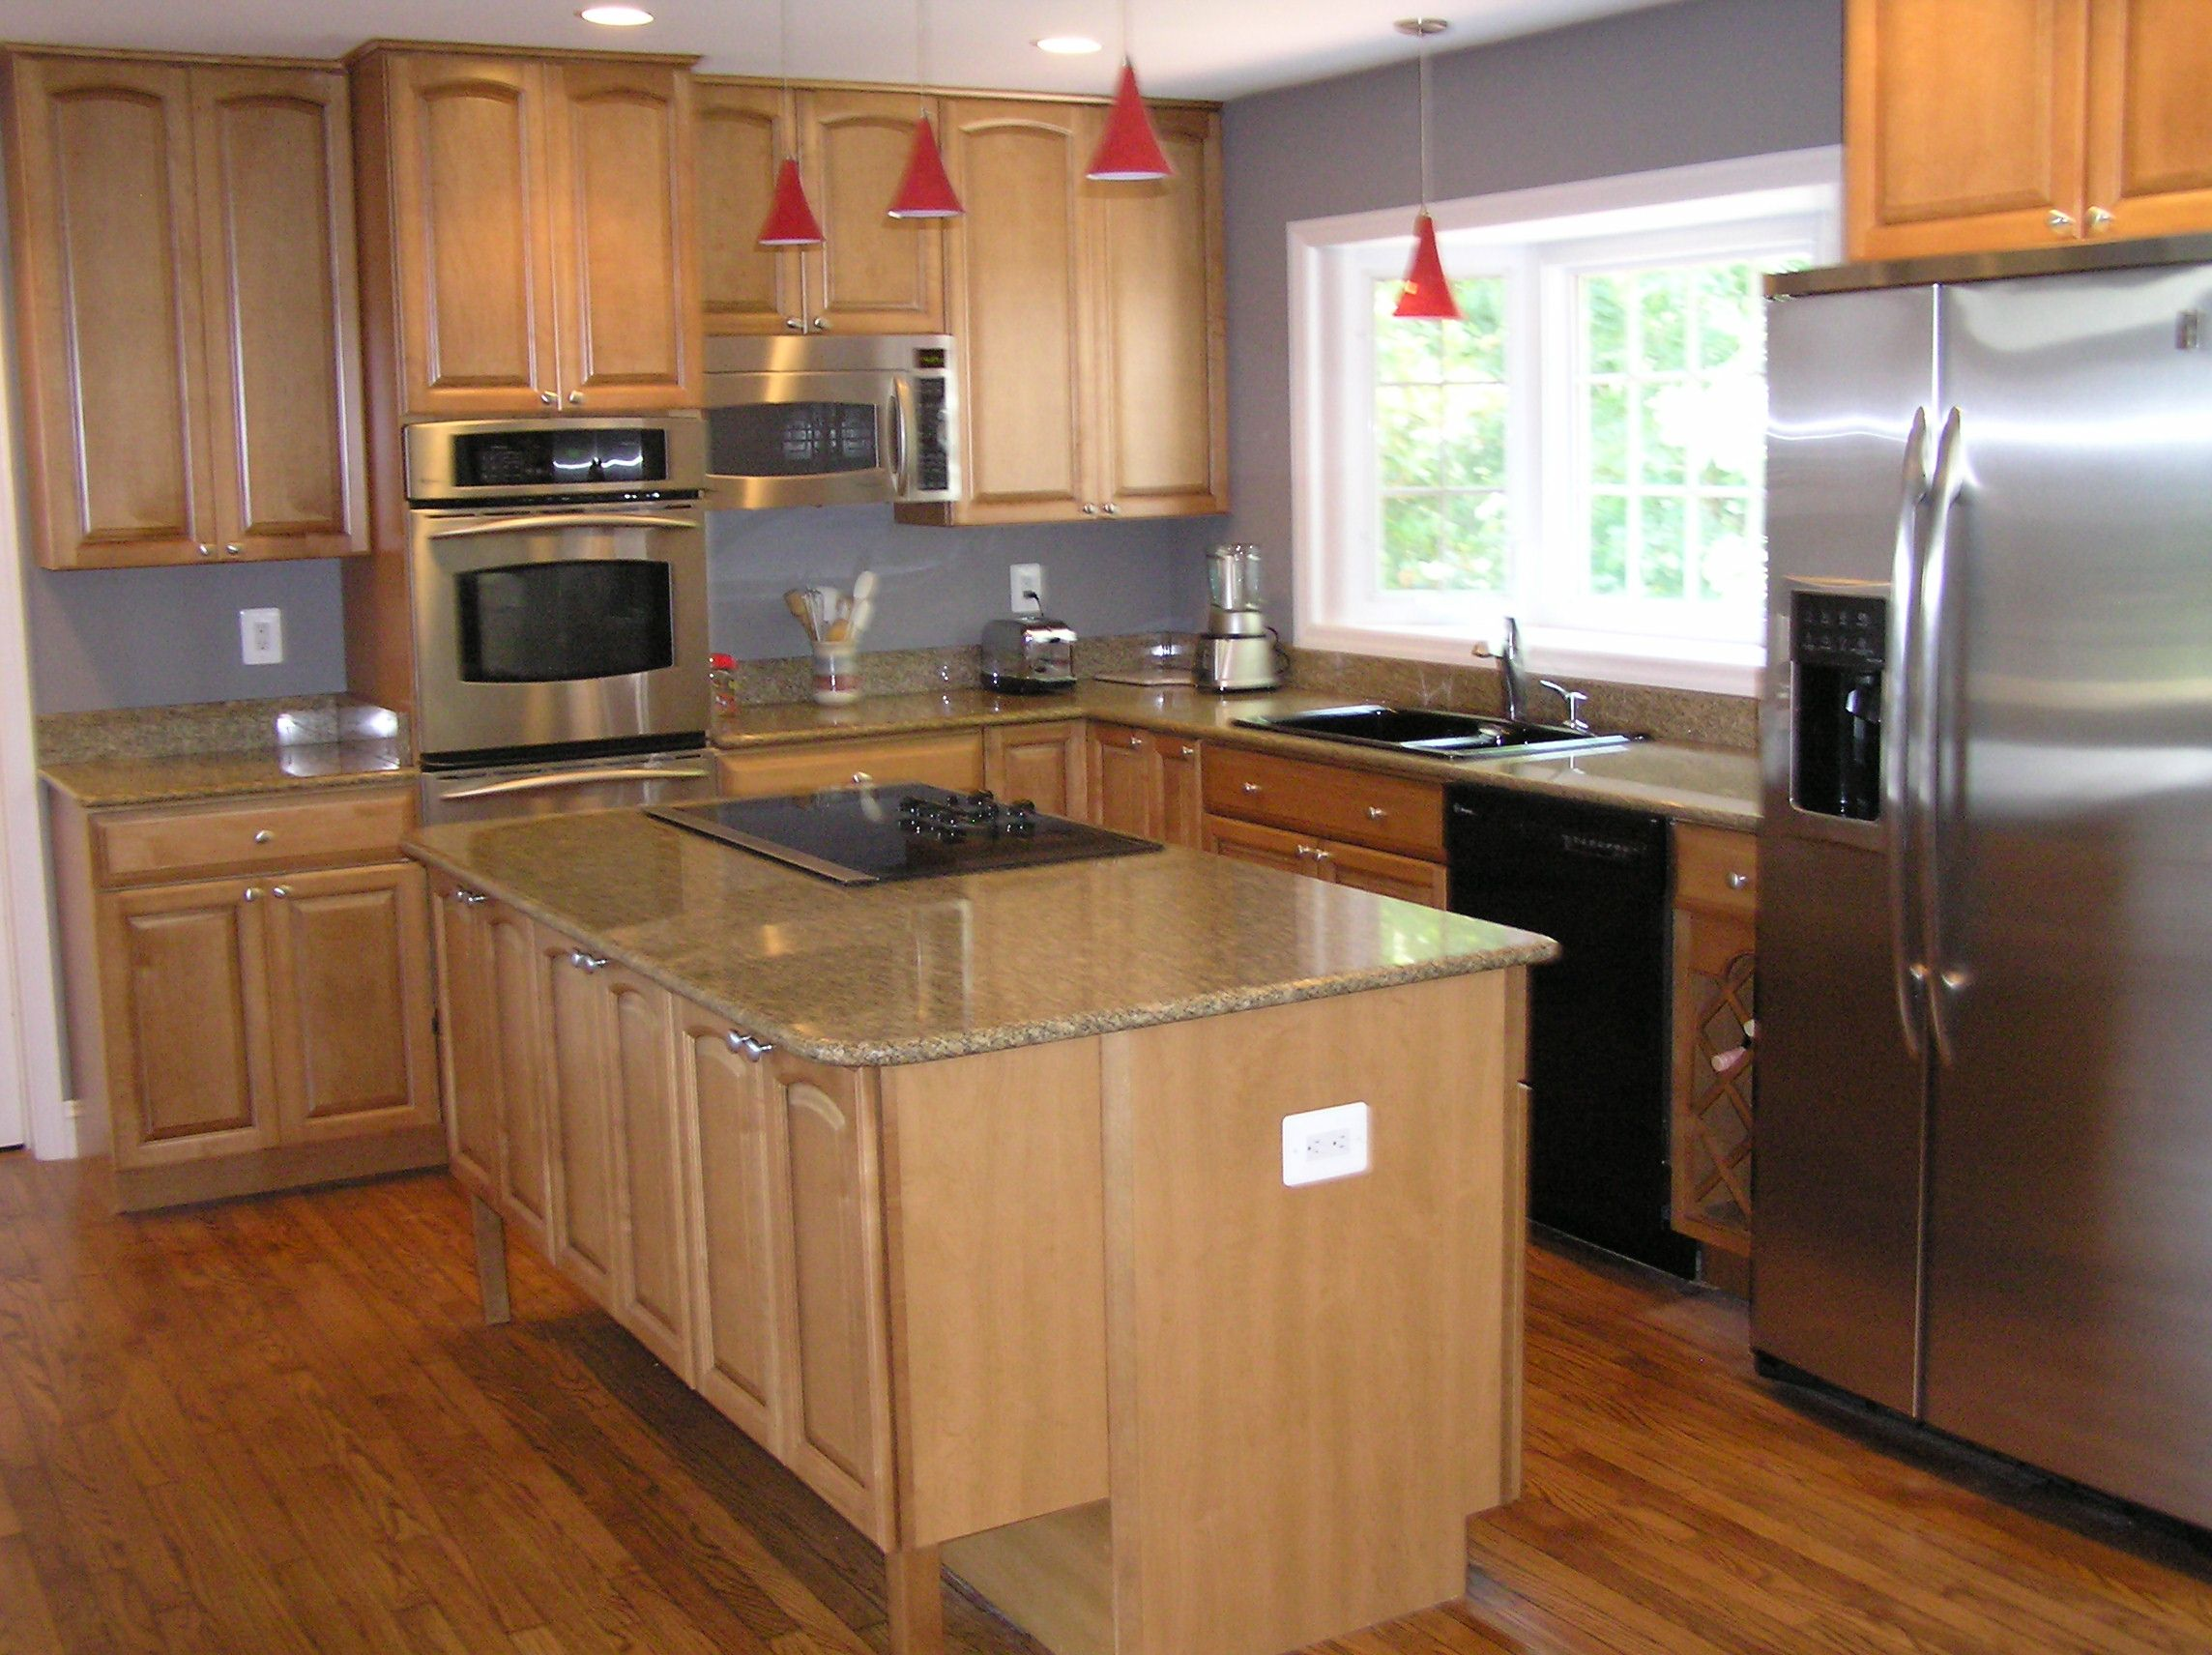 Check Out Http Thekitchenfactory Com For Kitchen Remodeling And Los Angeles Kitchen Cabinetry Kitchen Remodel Small Kitchen Remodel Design Kitchen Design